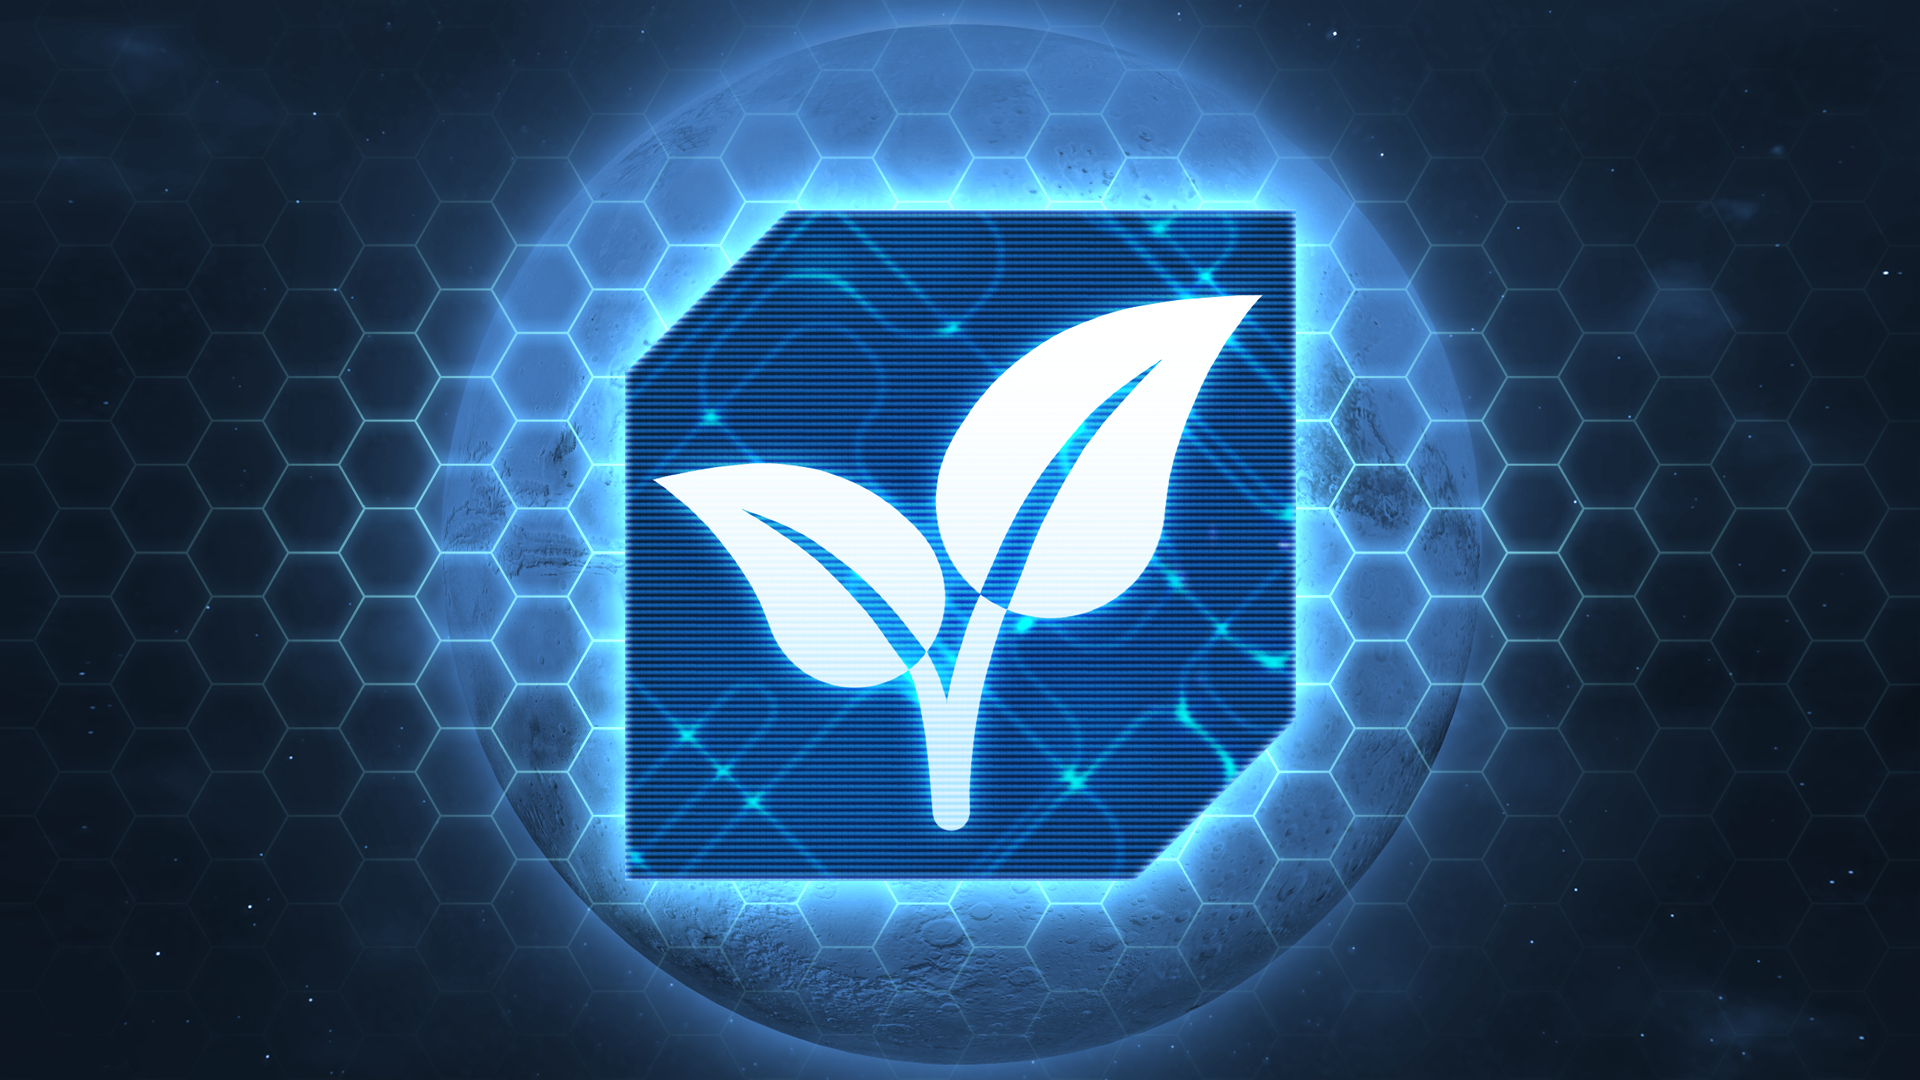 Icon for Seeds of Life